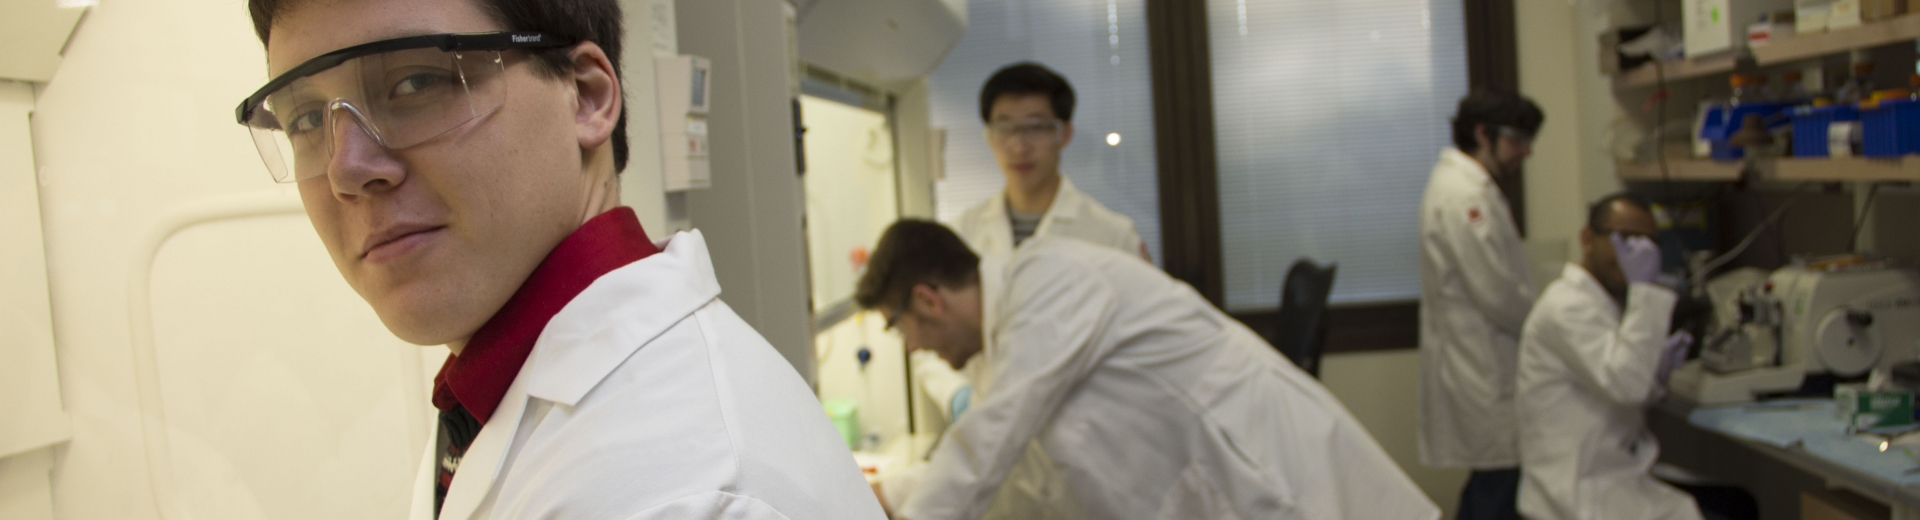 Undergraduate students in research lab